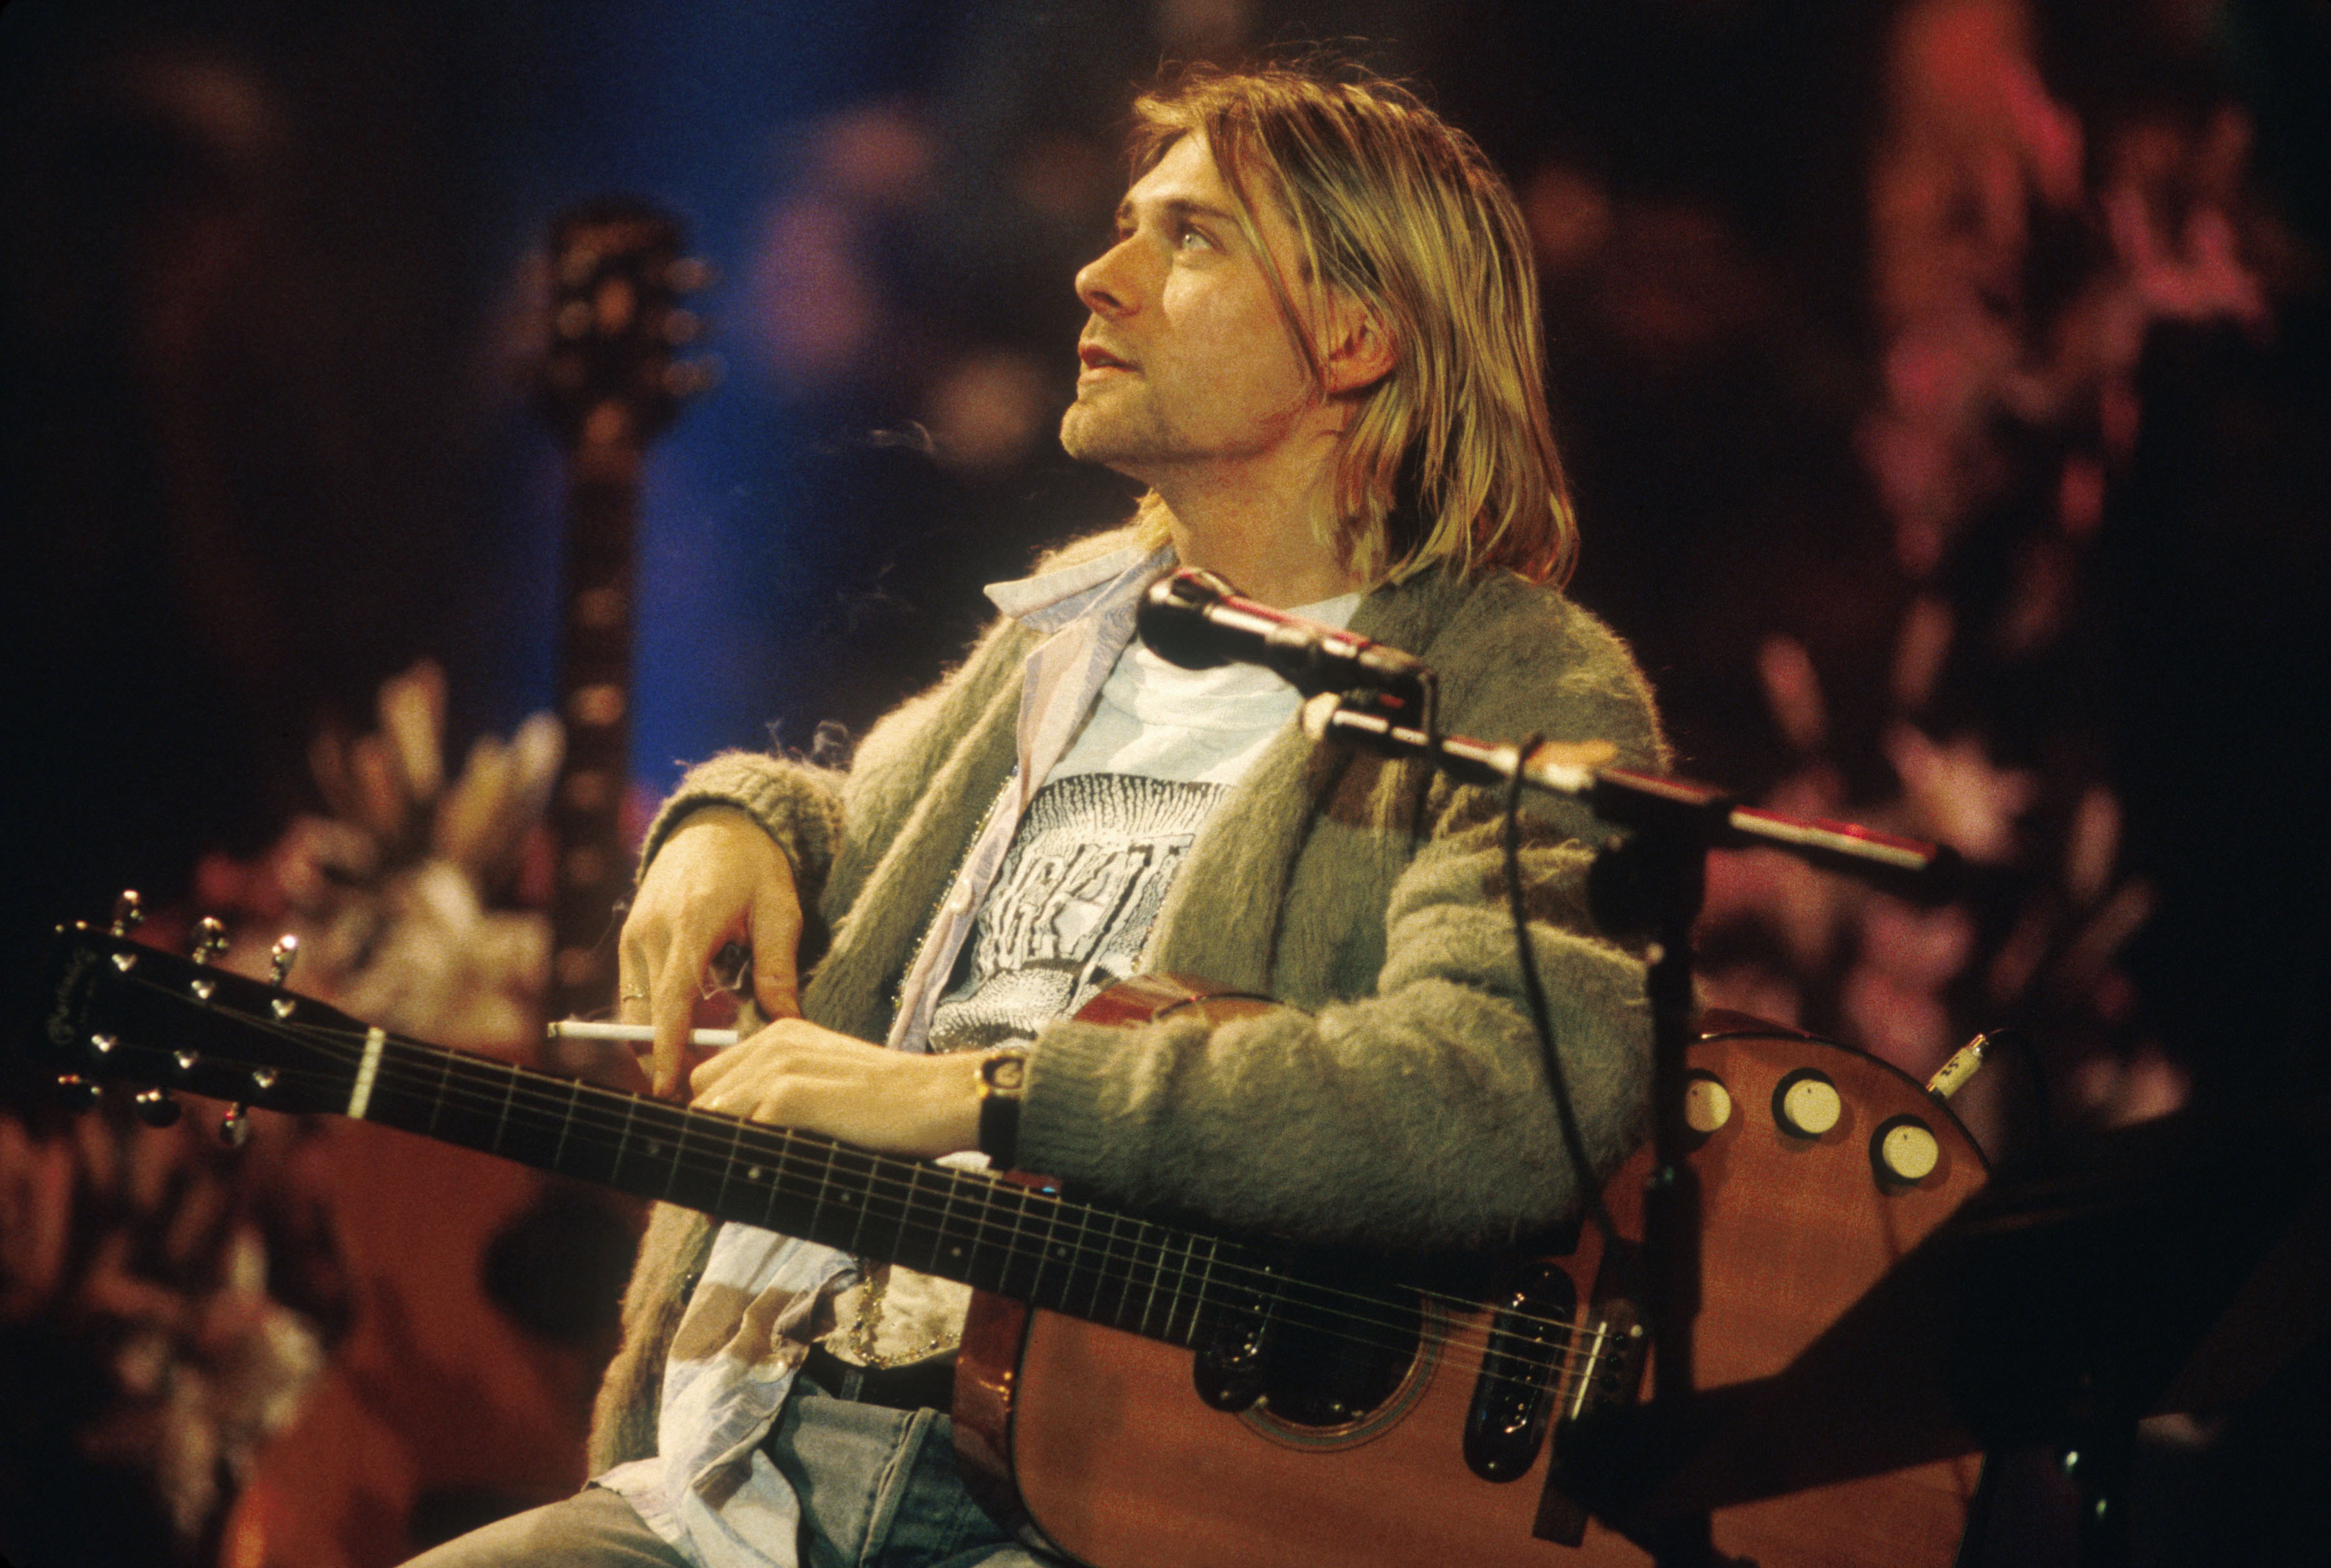 Kurt Cobain of Nirvana during the taping of MTV Unplugged at Sony Studios in New York City, 11/18/93.